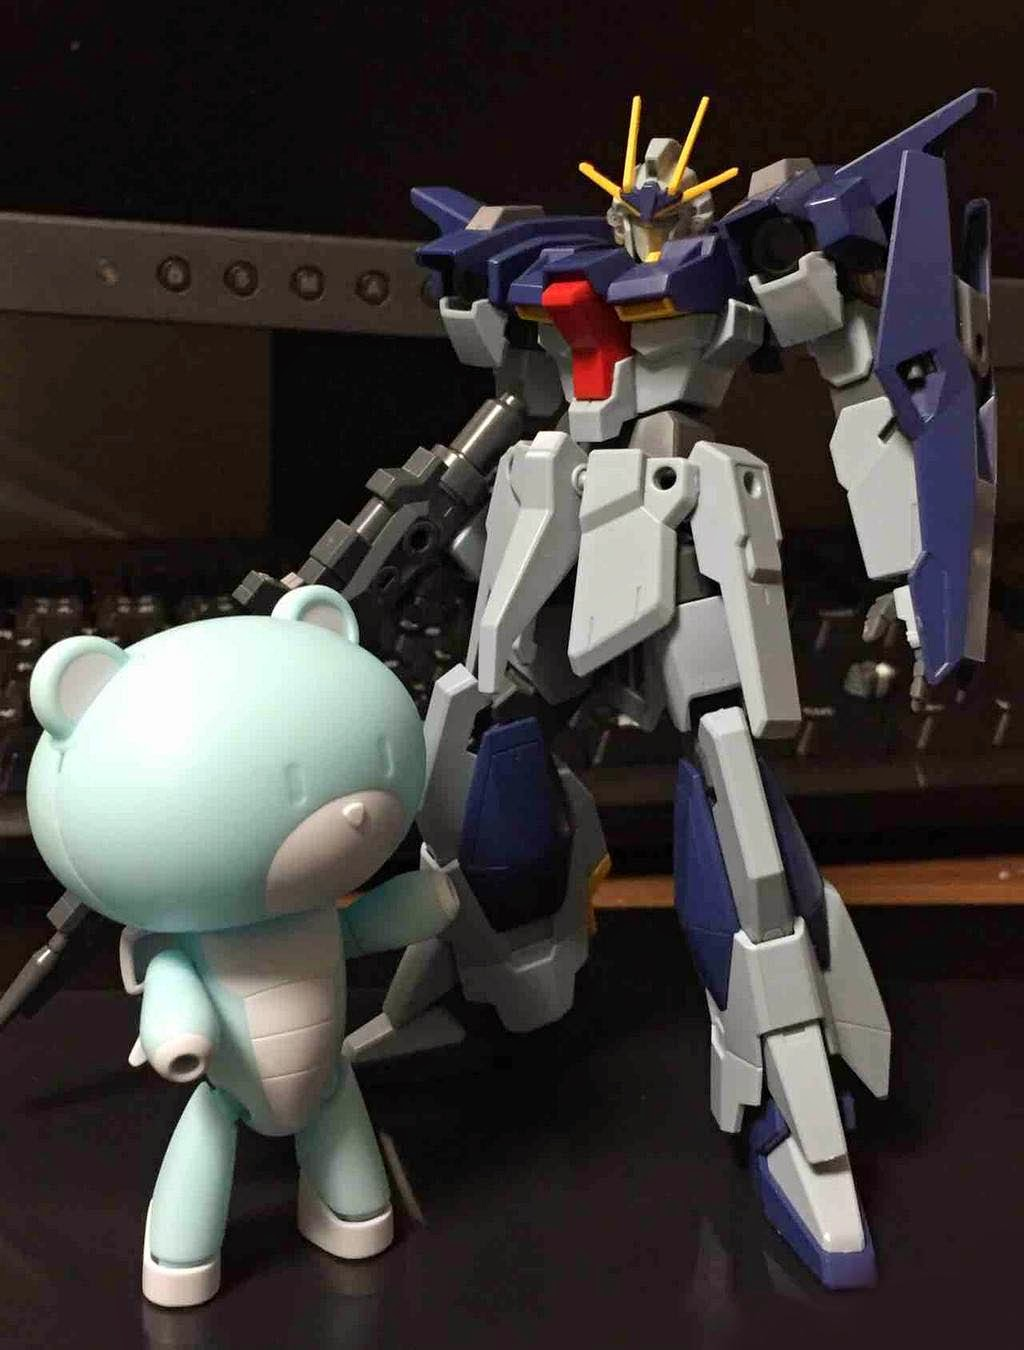 HGBF 1/144 Beargguy F [Family] - Release Info, Box Art and Official Images